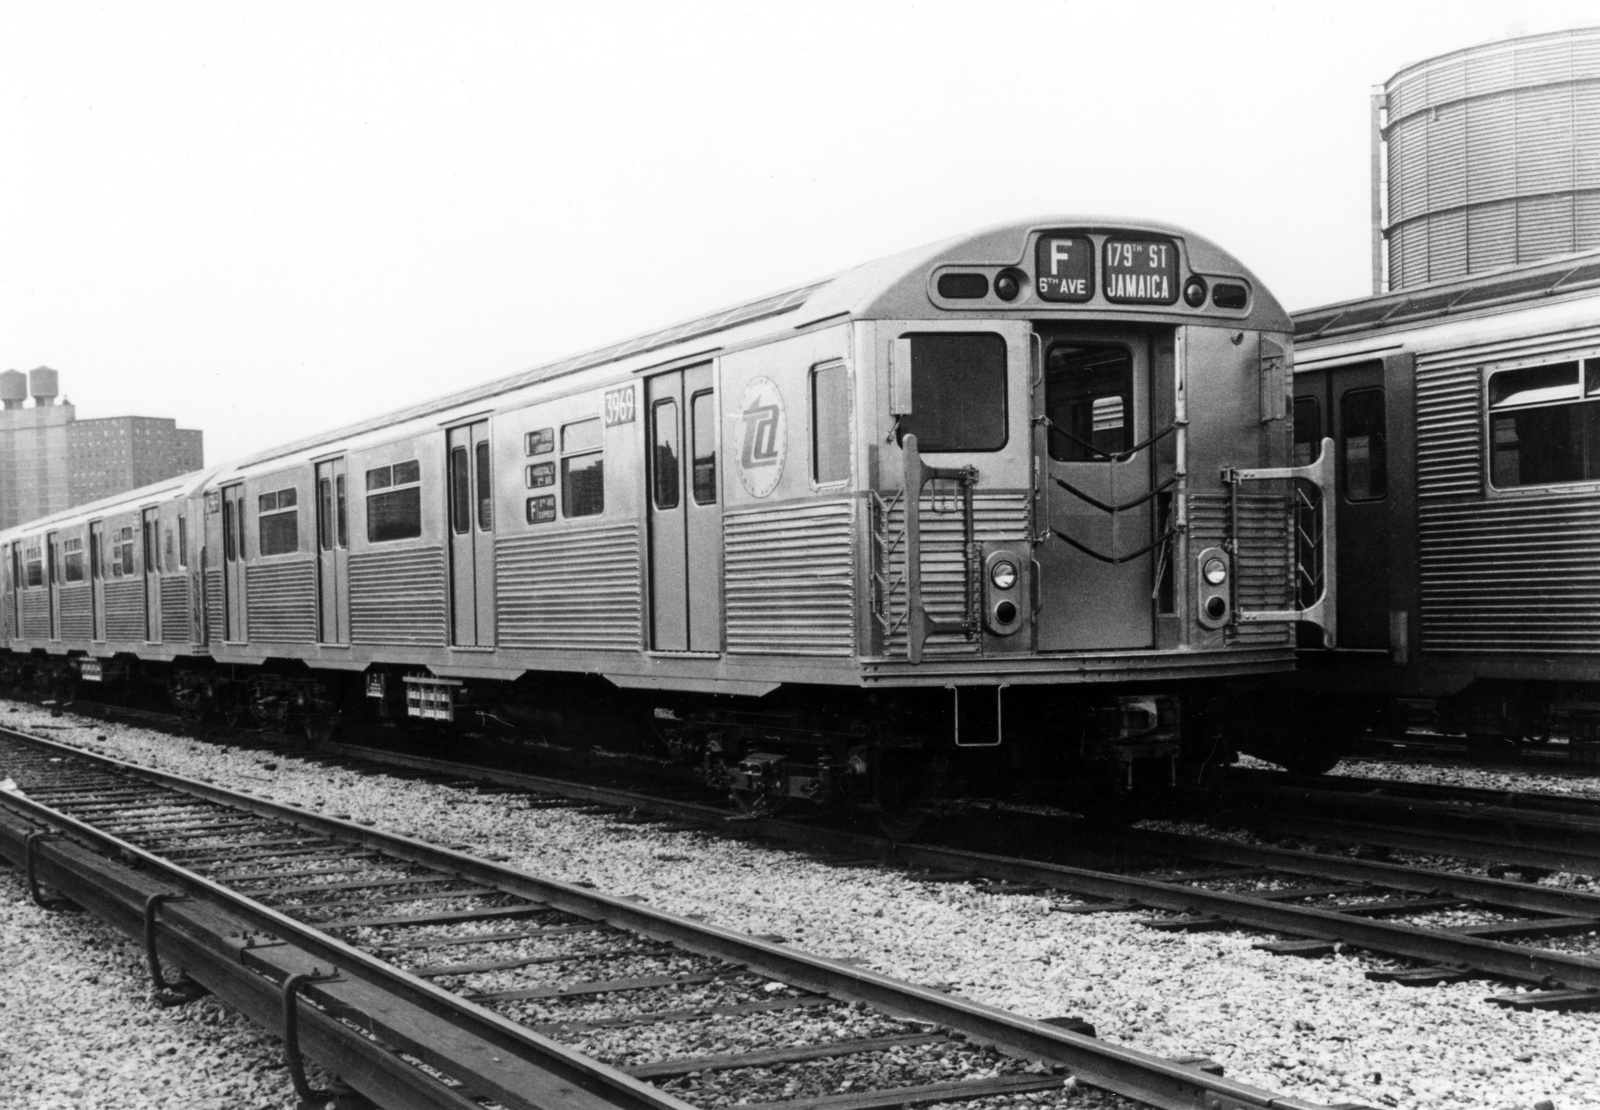 (273k, 1024x812)<br><b>Country:</b> United States<br><b>City:</b> New York<br><b>System:</b> New York City Transit<br><b>Location:</b> Coney Island Yard<br><b>Car:</b> R-38 (St. Louis, 1966-1967)  3969 <br><b>Photo by:</b> Ed Watson/Arthur Lonto Collection<br><b>Collection of:</b> Frank Pfuhler<br><b>Date:</b> 1966<br><b>Viewed (this week/total):</b> 1 / 827